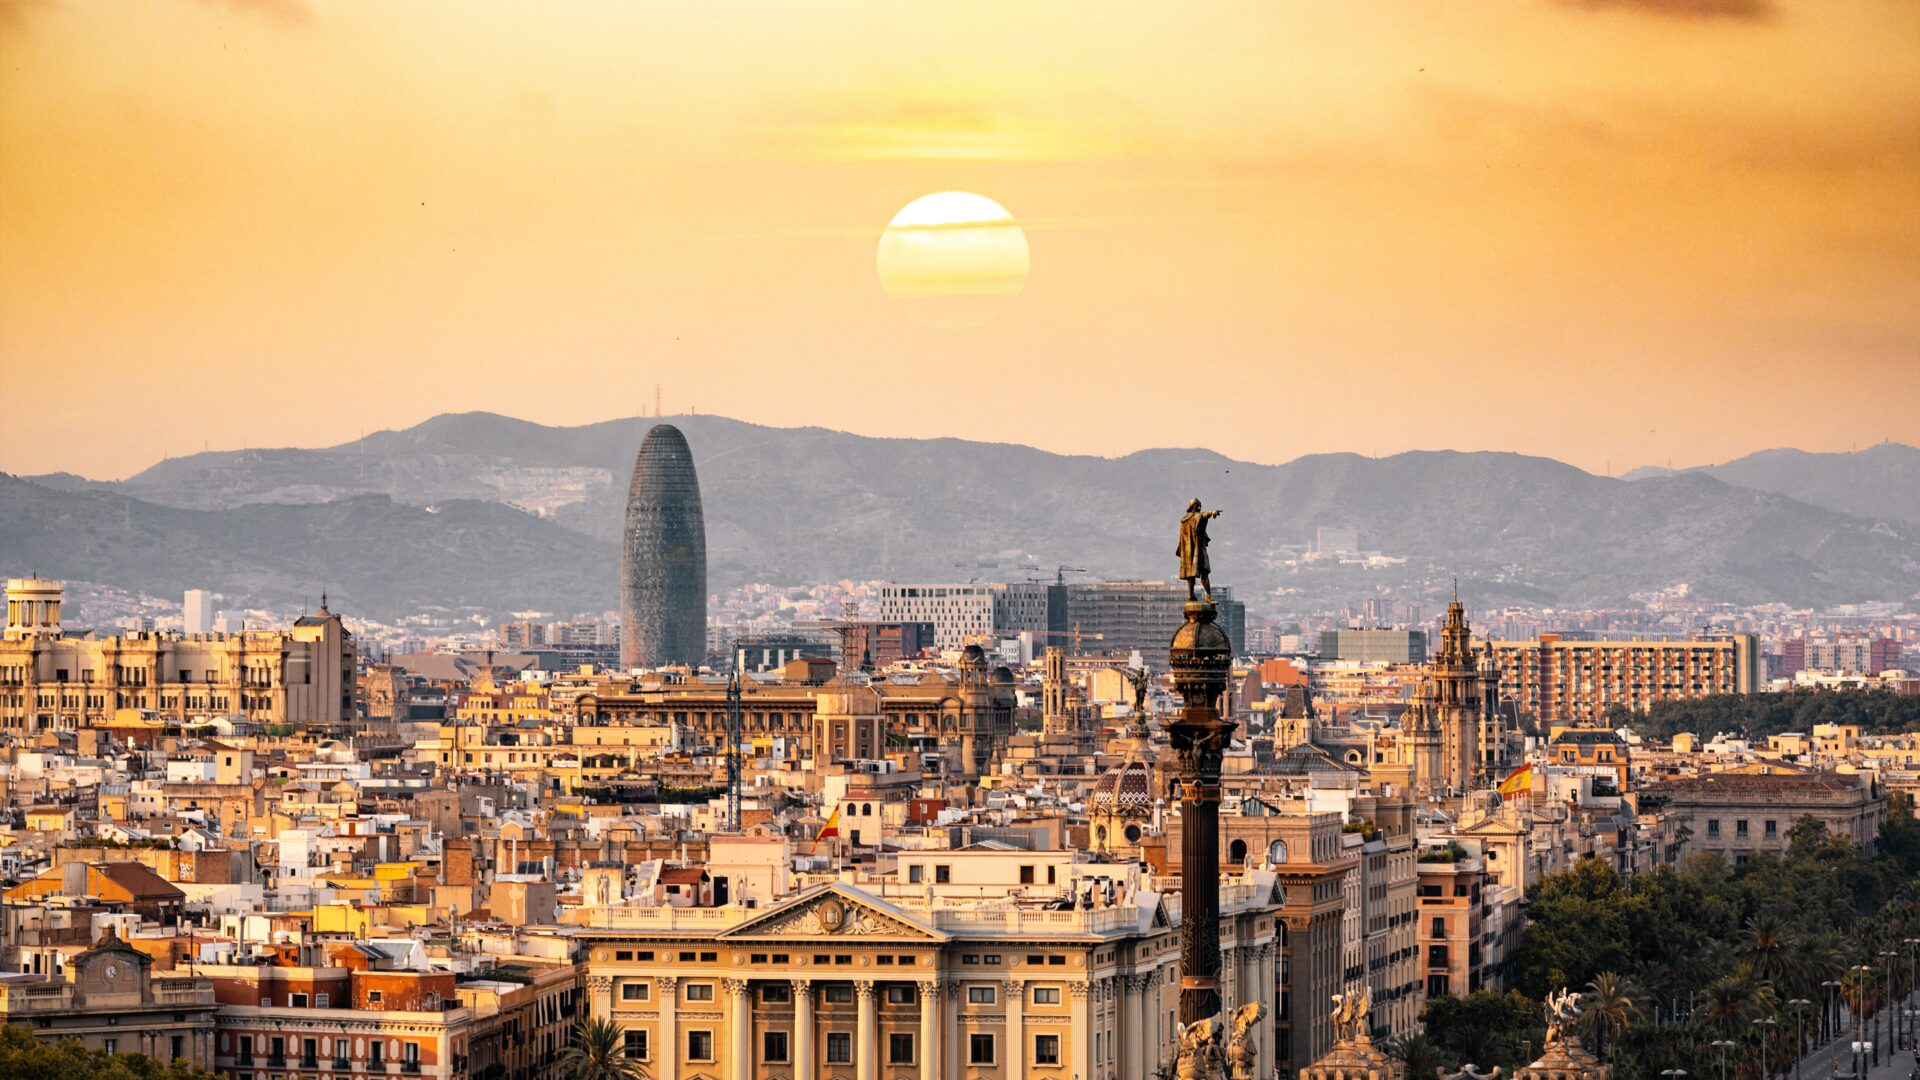 Barcelona city skyline at sunset